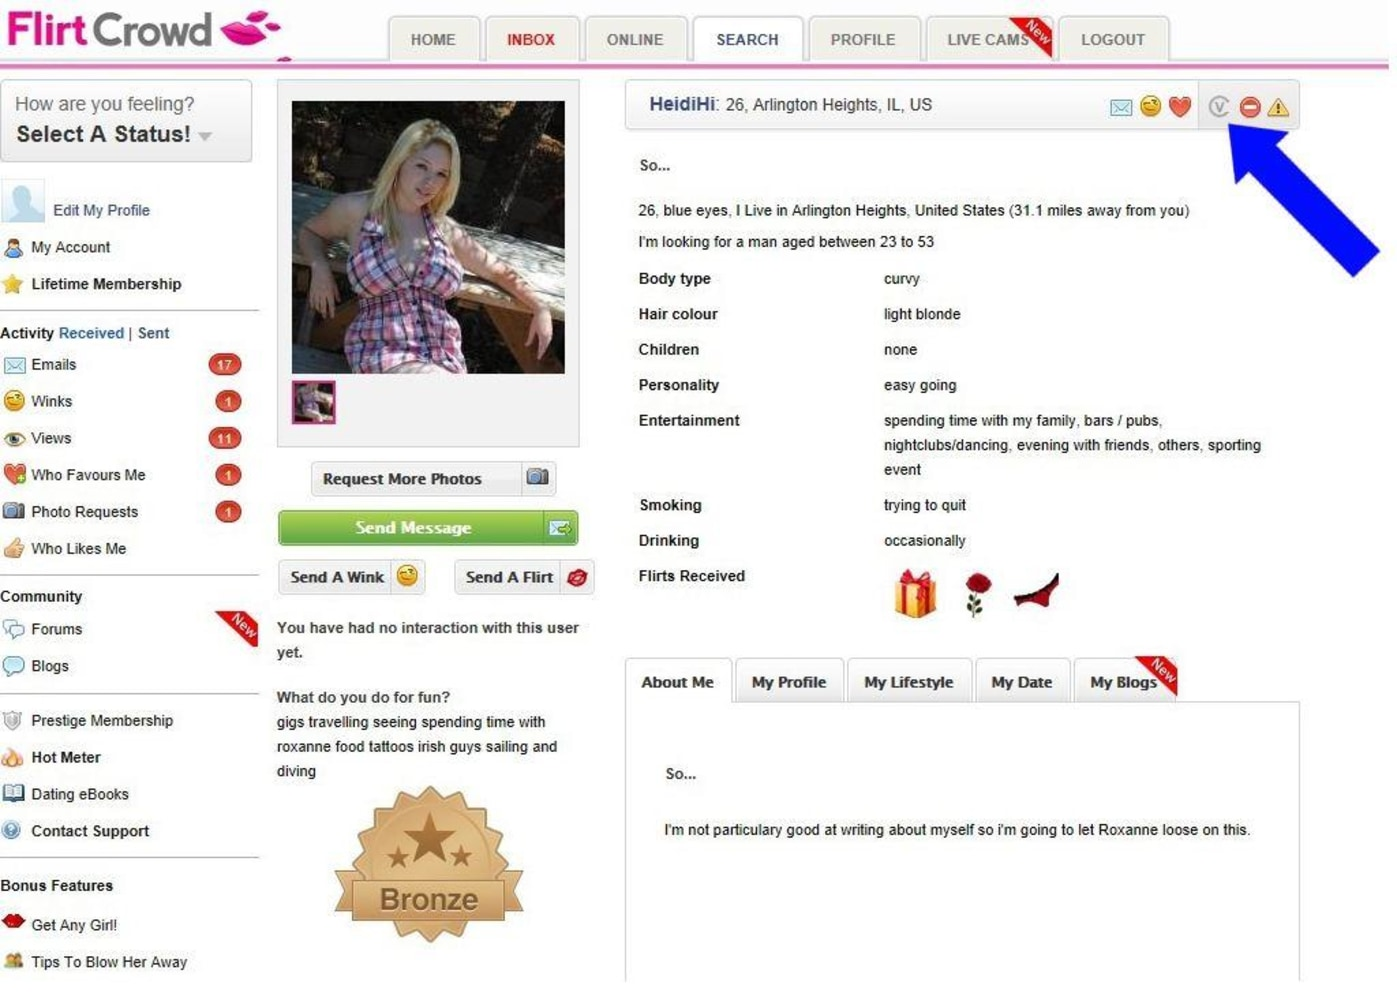 """ftc sues online dating site over fake flirty profiles A class action lawsuit has been filed against the online dating website matchcom (""""matchcom"""" or """"defendant"""") in united states district court in dallas, texas alleging, among other things, that profiles of prospective dates on the matchcom online dating website belong to inactive or fake users who cannot be contacted and that match."""